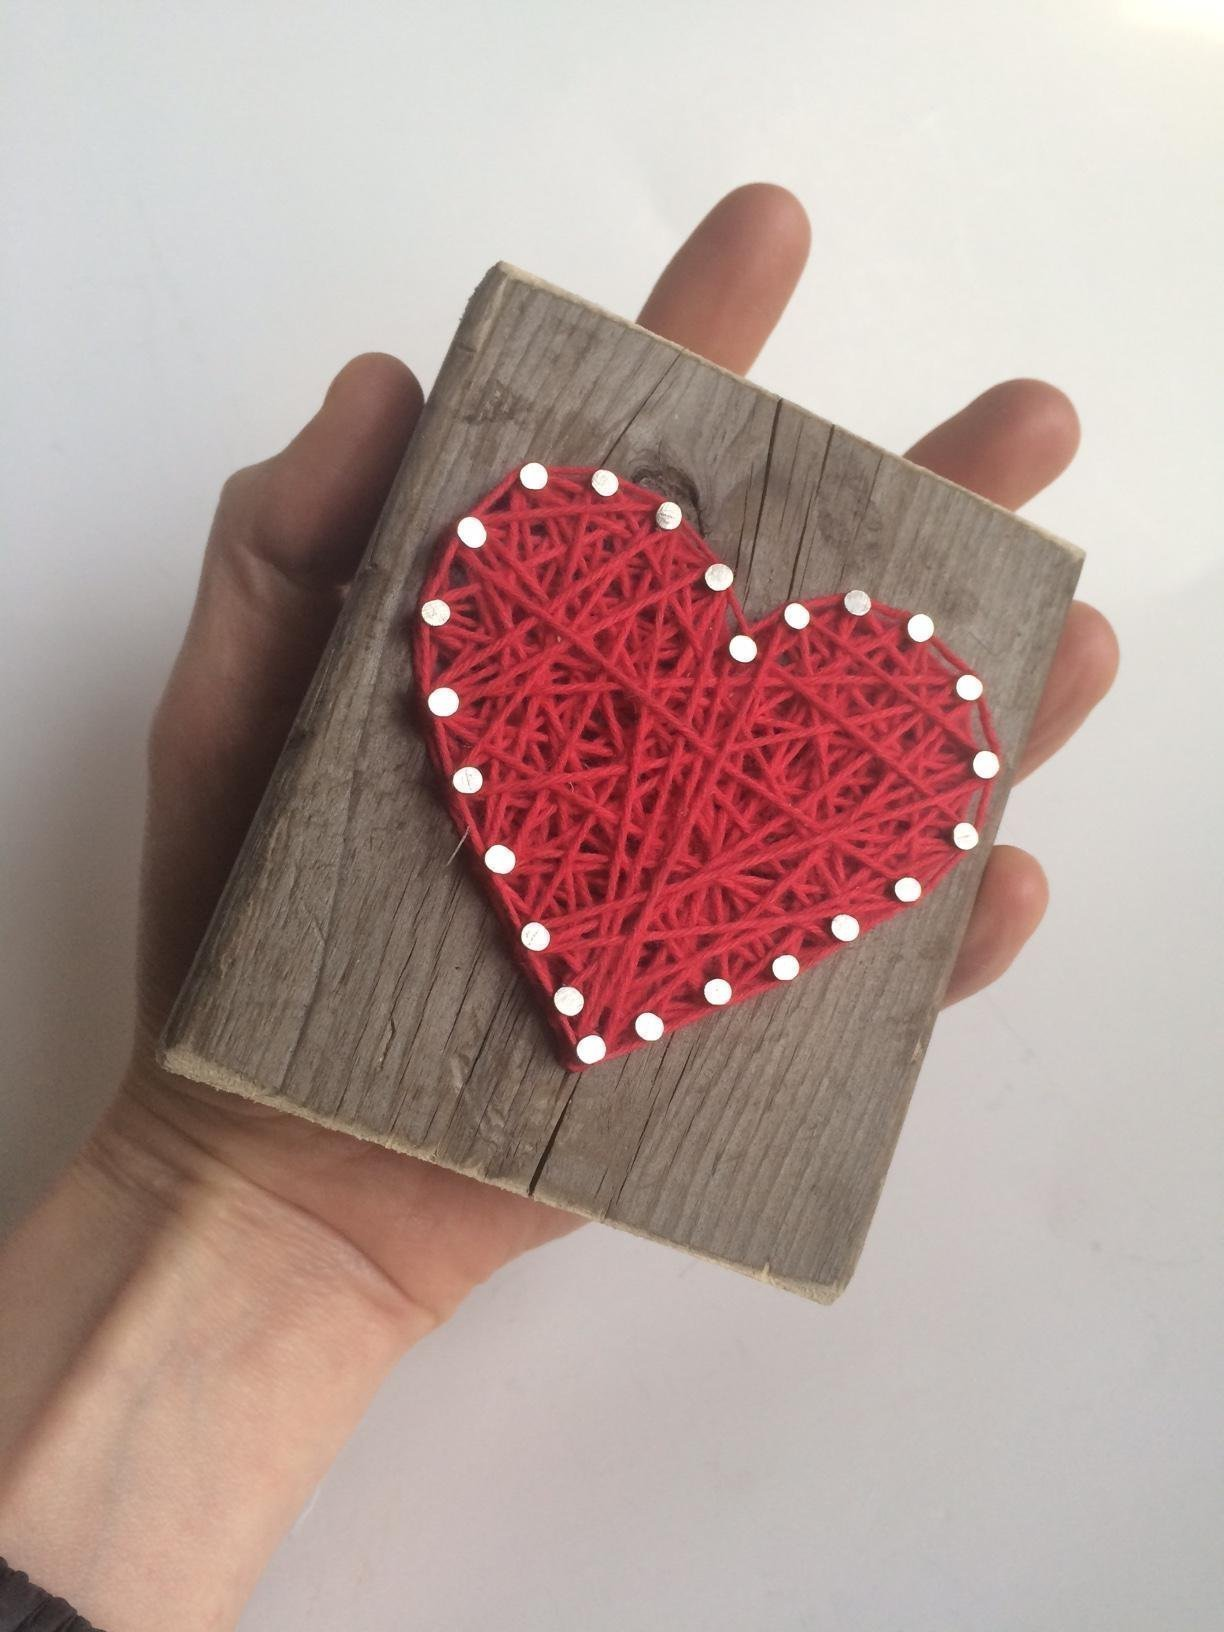 Sweet and small rustic wooden aqua string art heart block. Unique gift Easter baskets, for Father's Day, Weddings, Anniversaries, Birthdays, Christmas, housewarming and just because gifts. by Nail it Art (Image #5)